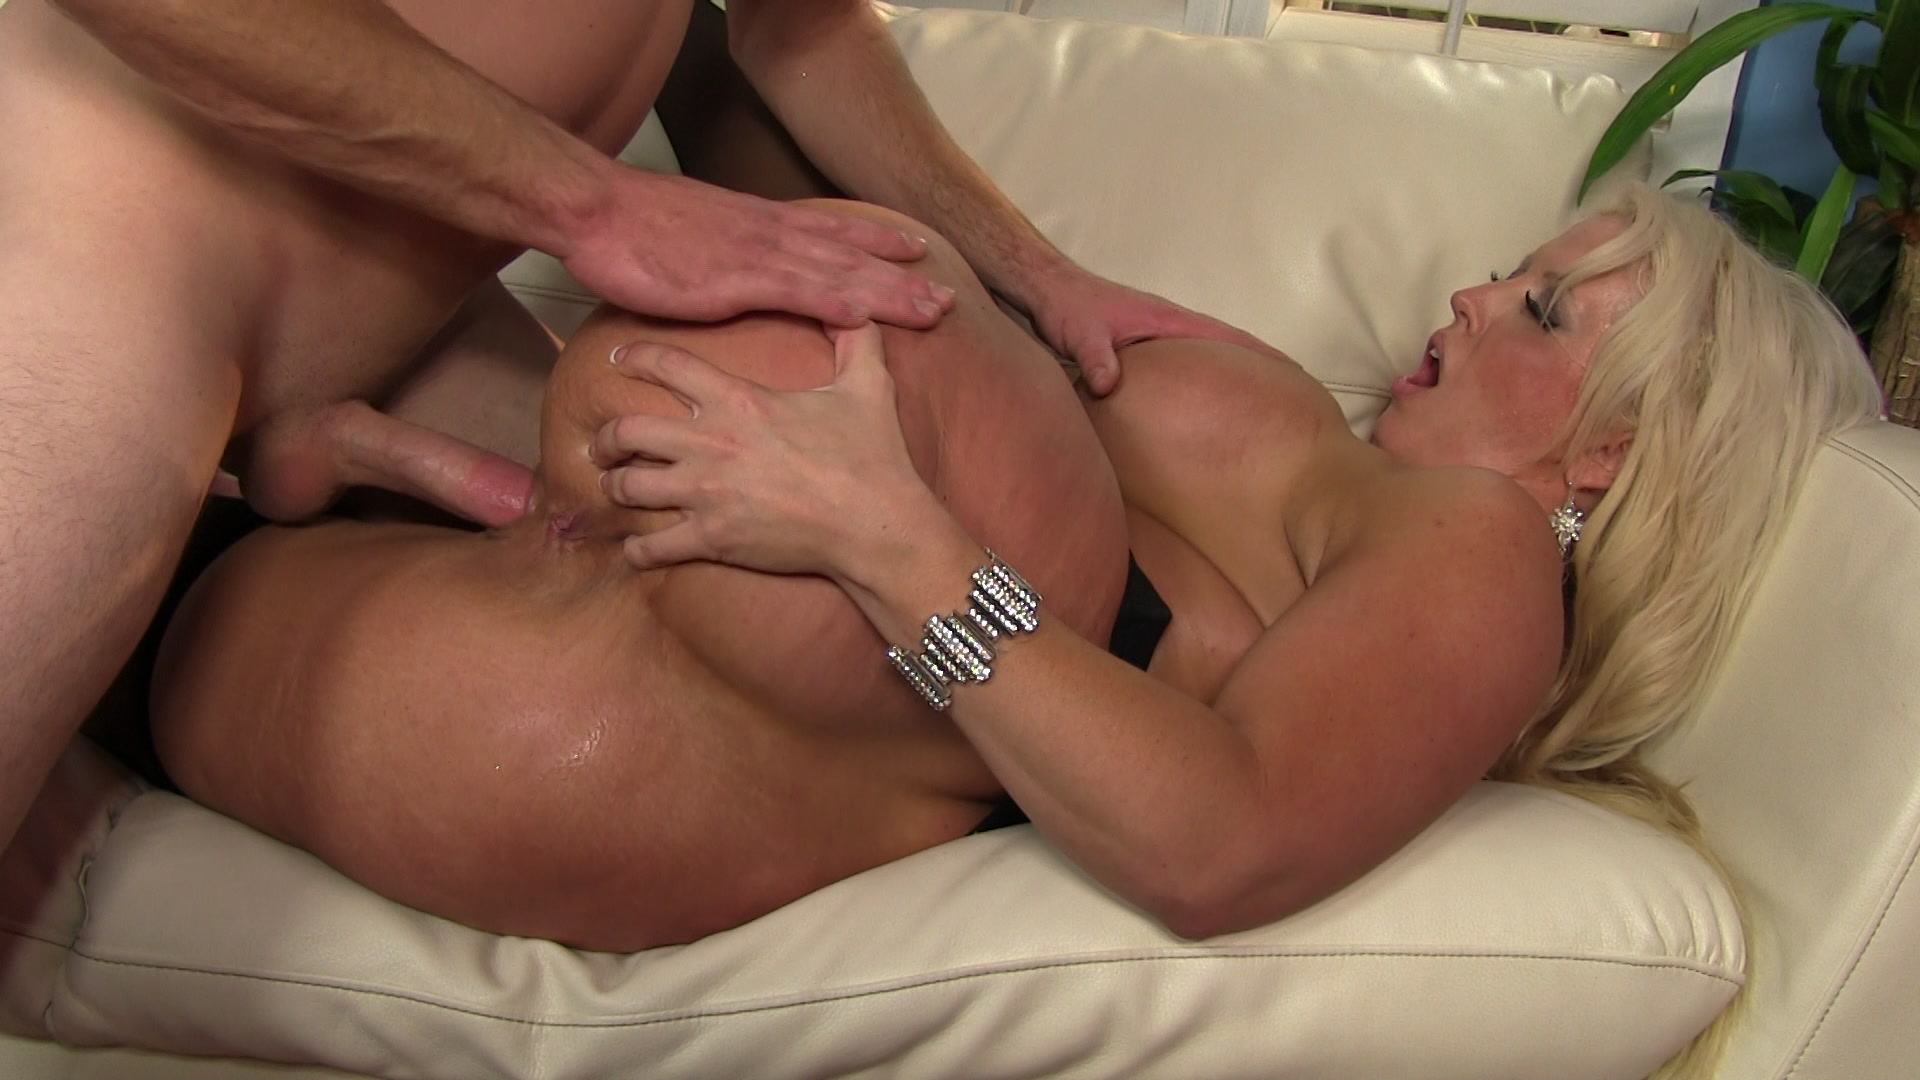 Mother, world's best XXX site, ssbbw, pics will provide you such tasty  images sugary cougars, 100% spicybigtits galeries melonsclips bigboobsfilm  Moms ...